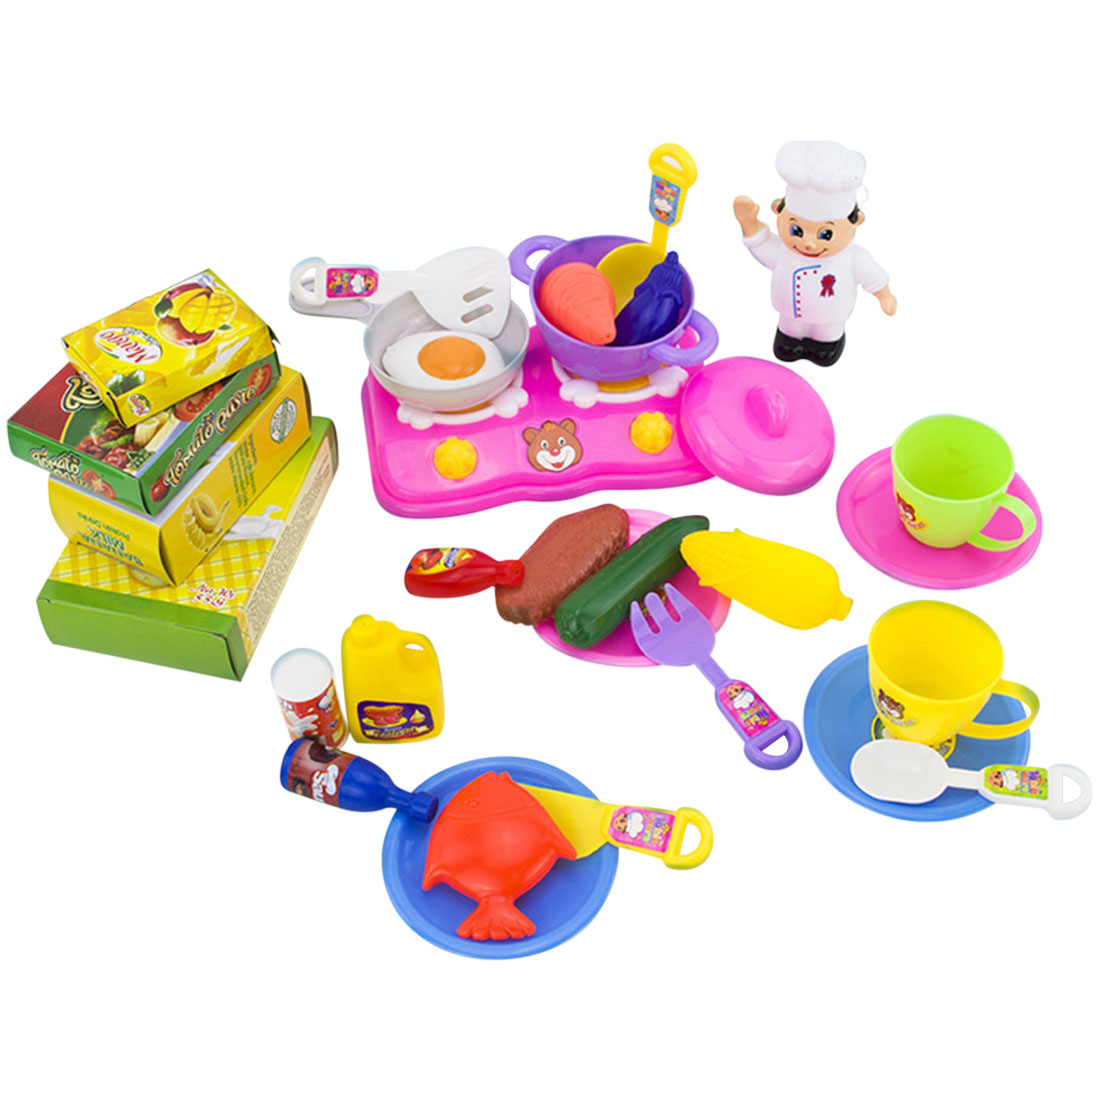 31pcs Colorful Kids Dinner Toy Food Dishes Tableware